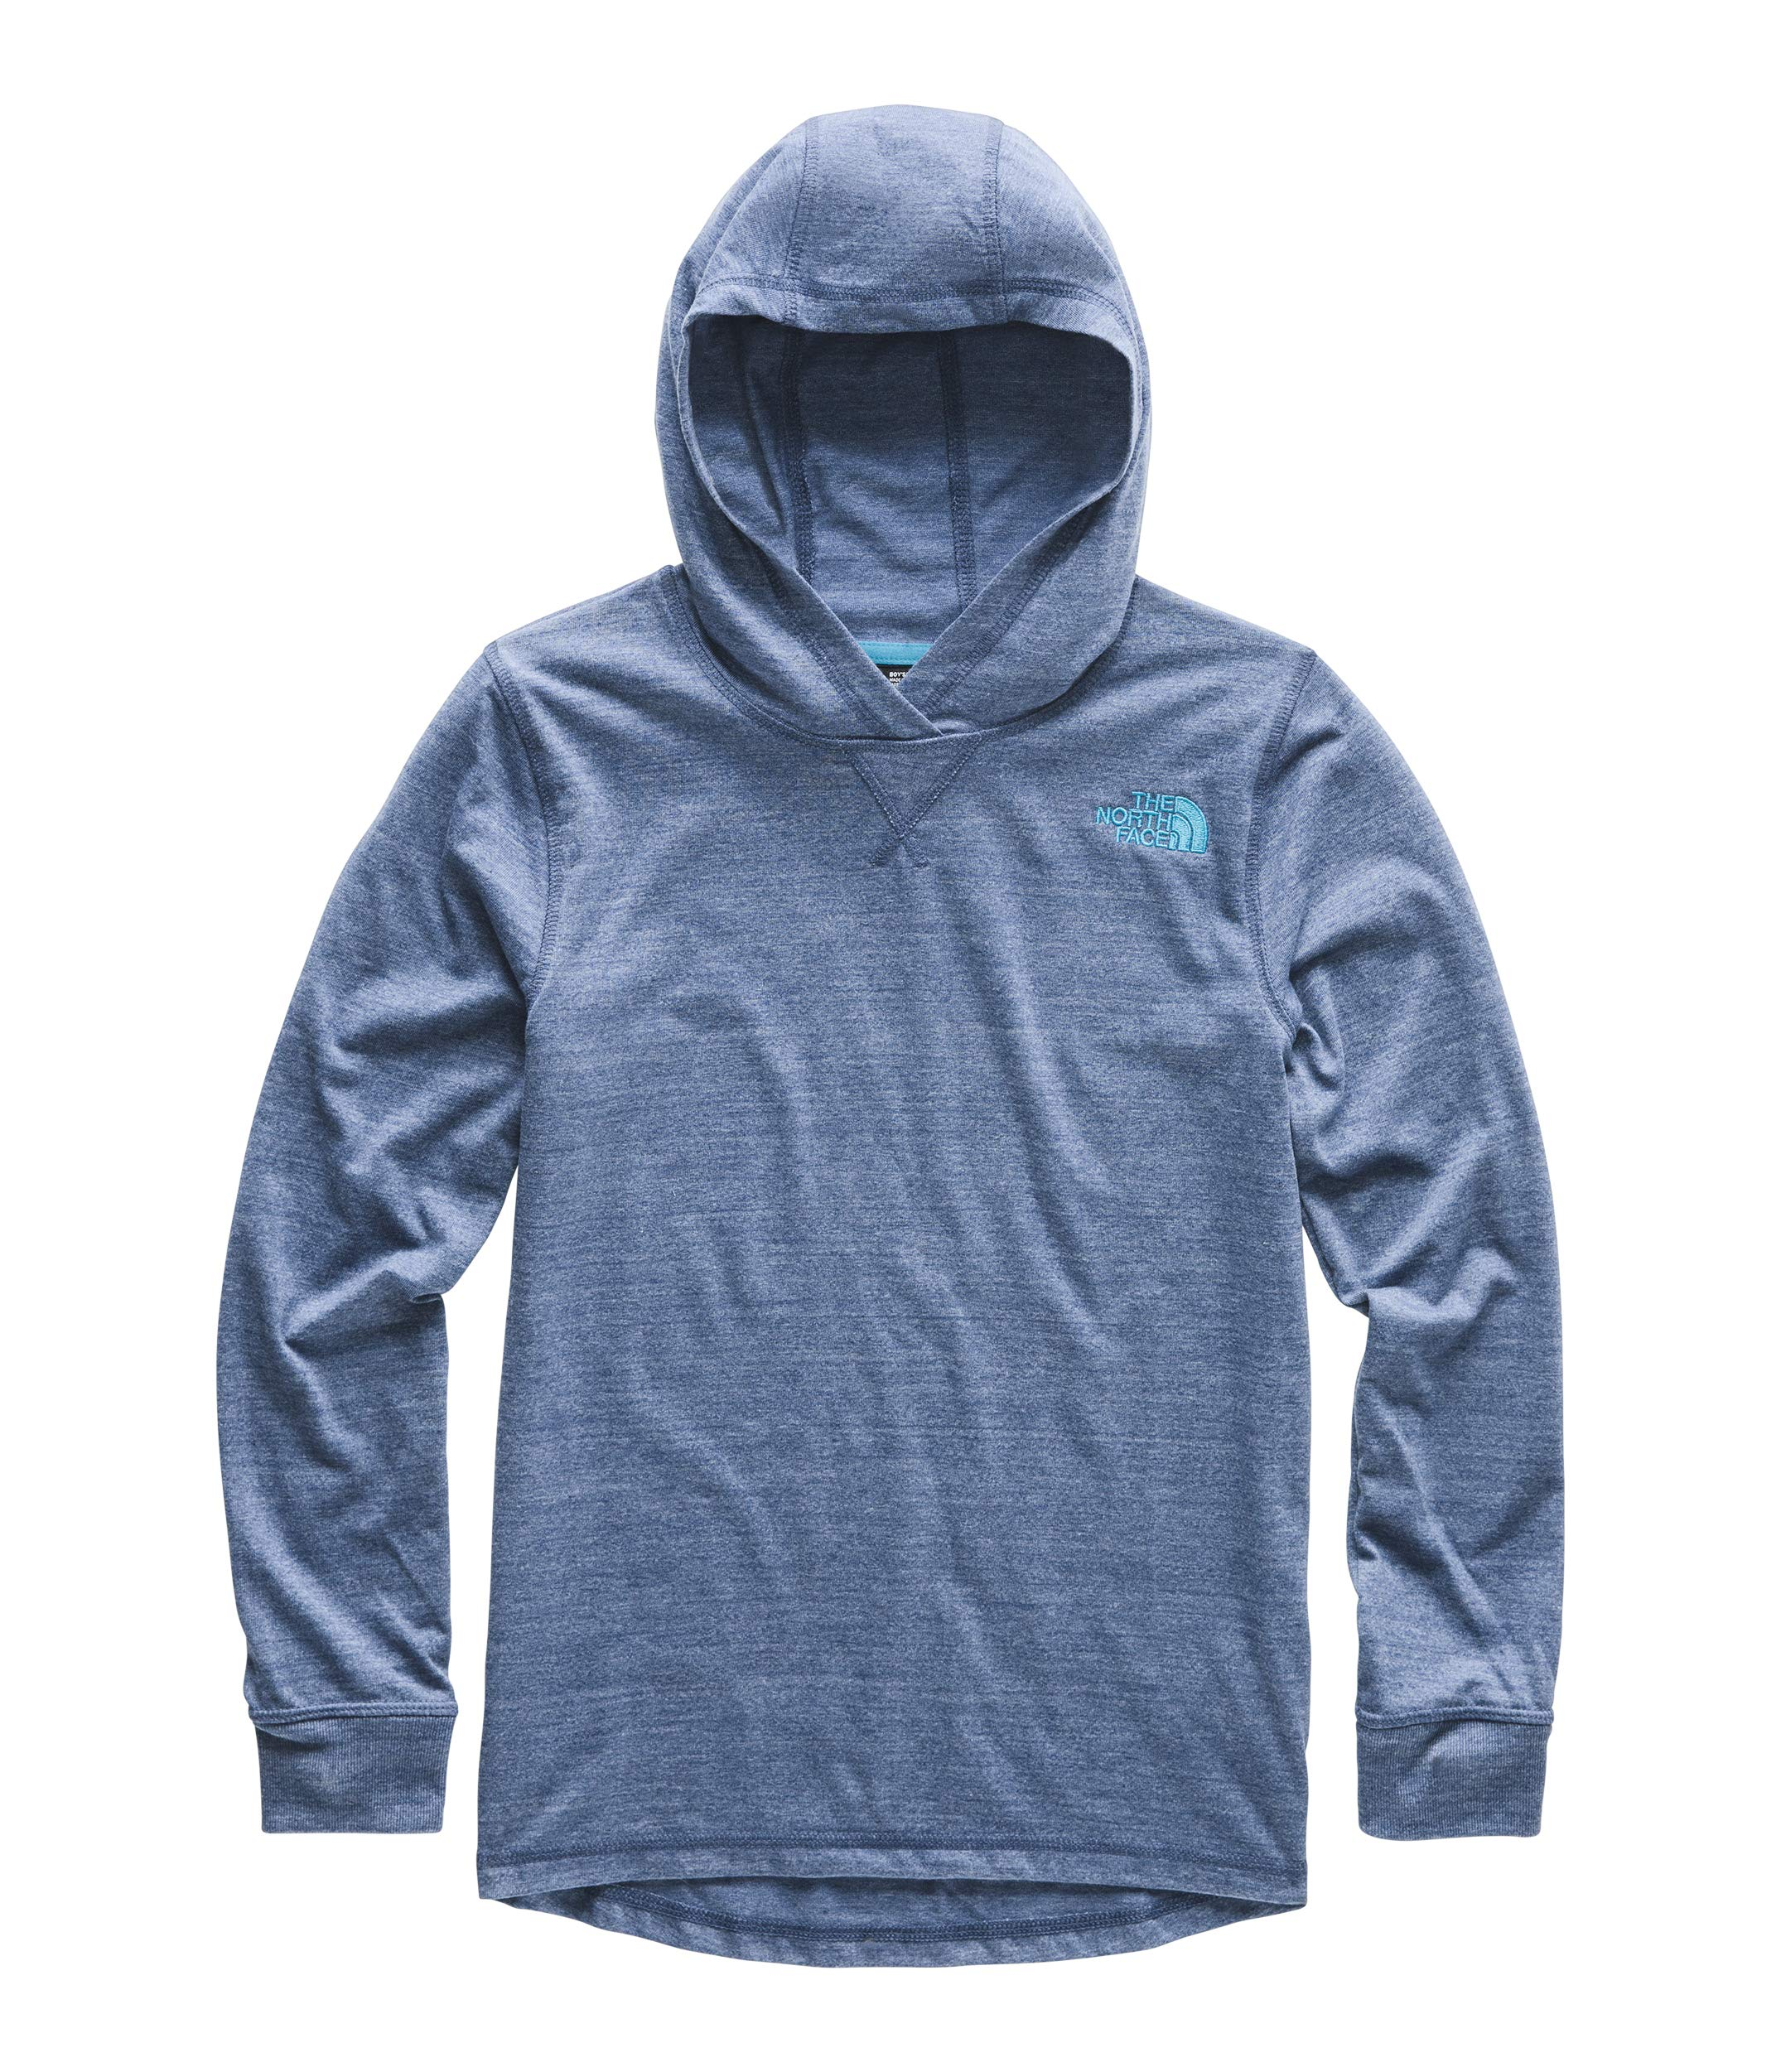 The North Face Kids Boy's Tri-Blend Pullover Hoodie (Little Kids/Big Kids) Shady Blue Heather Small